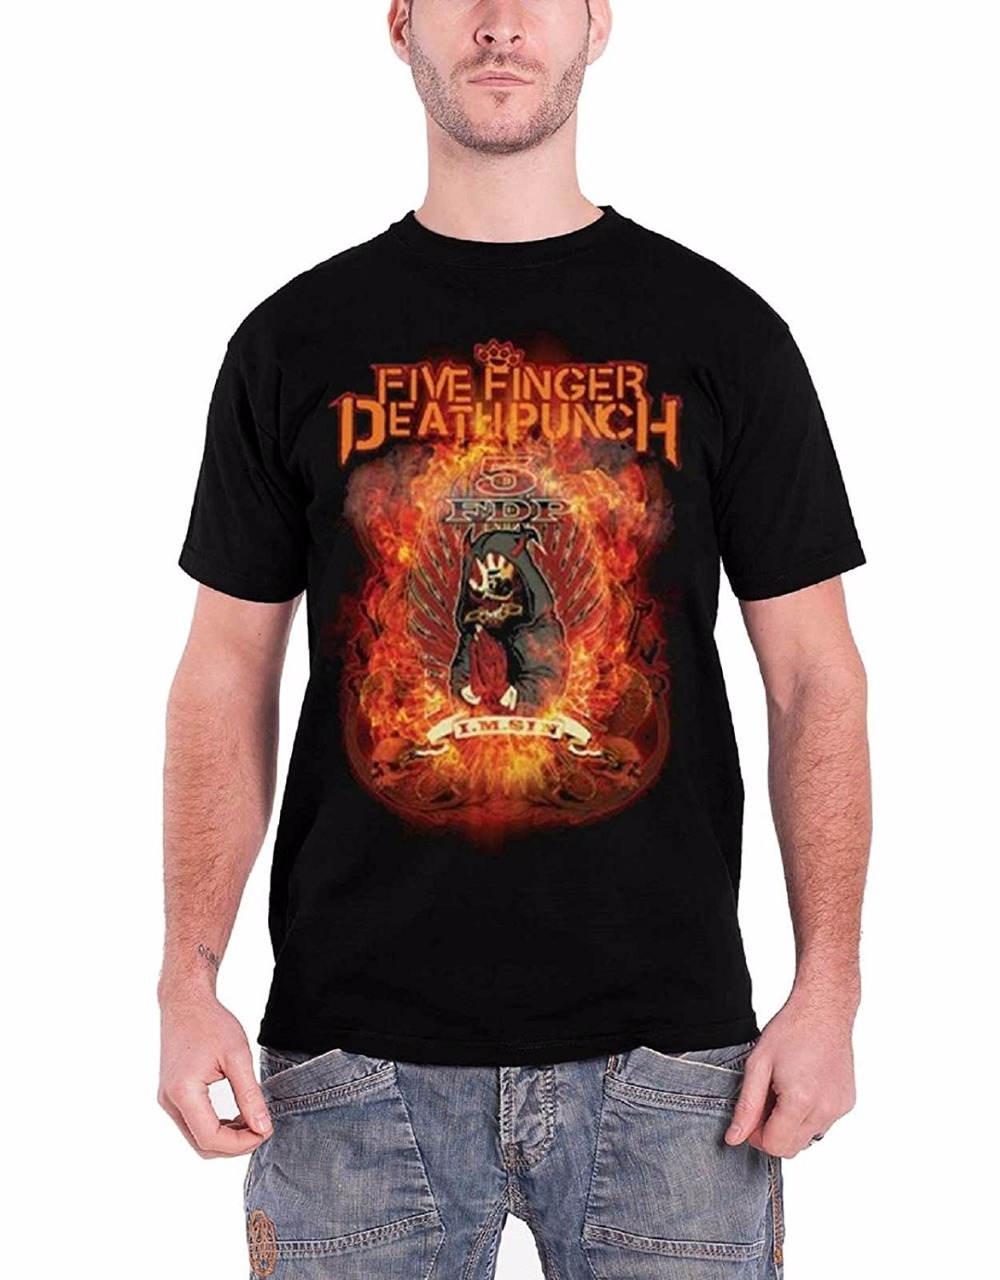 Cool T Shirts For Sale Mens Short Five Finger Death Punch Shirt Burn In Sin Band Logo Official Mens Black O-Neck Tall T Shirt